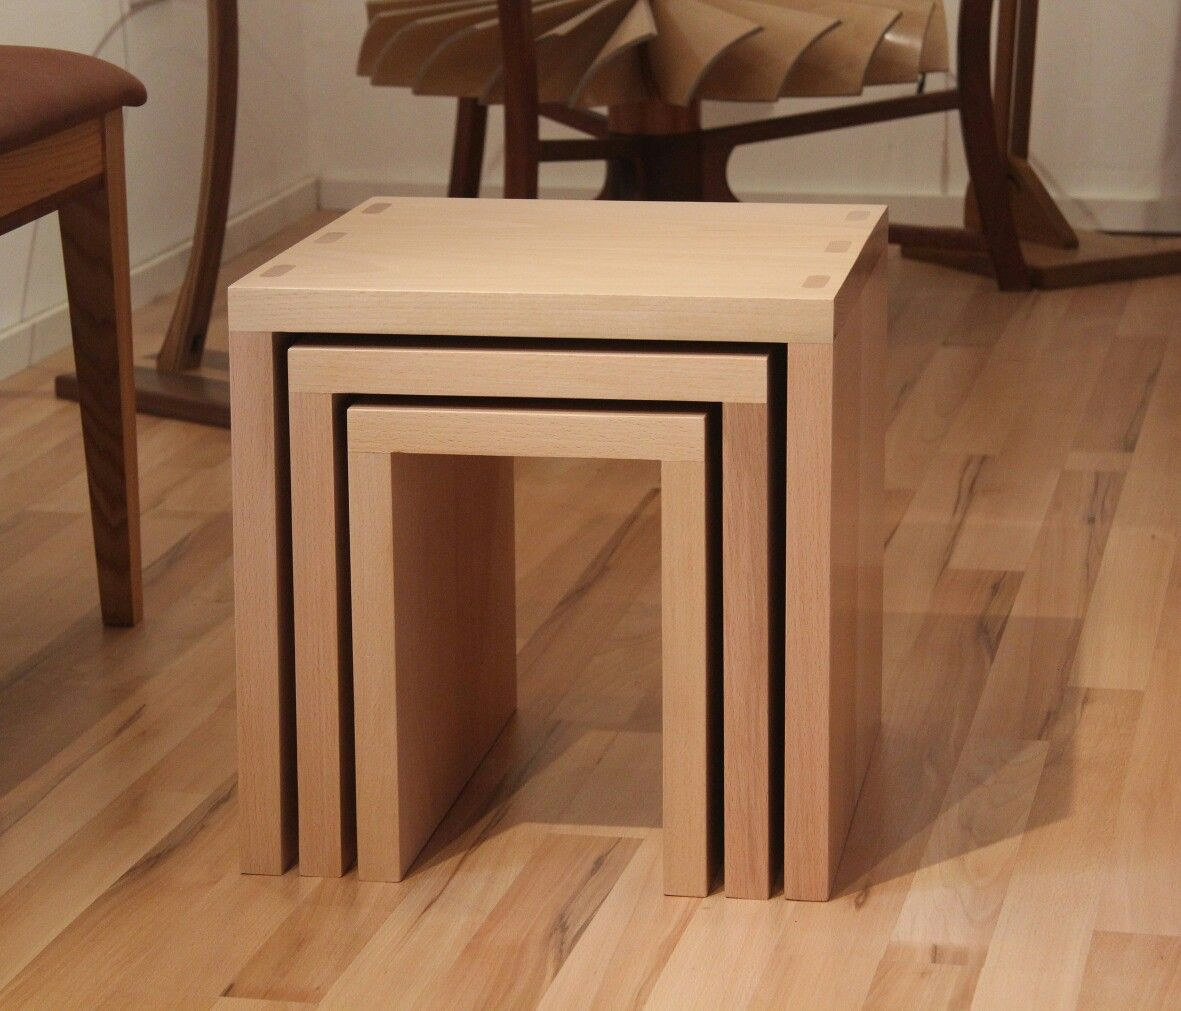 Beech nest of tables david smith furniture pinterest tables beech nest of tables watchthetrailerfo